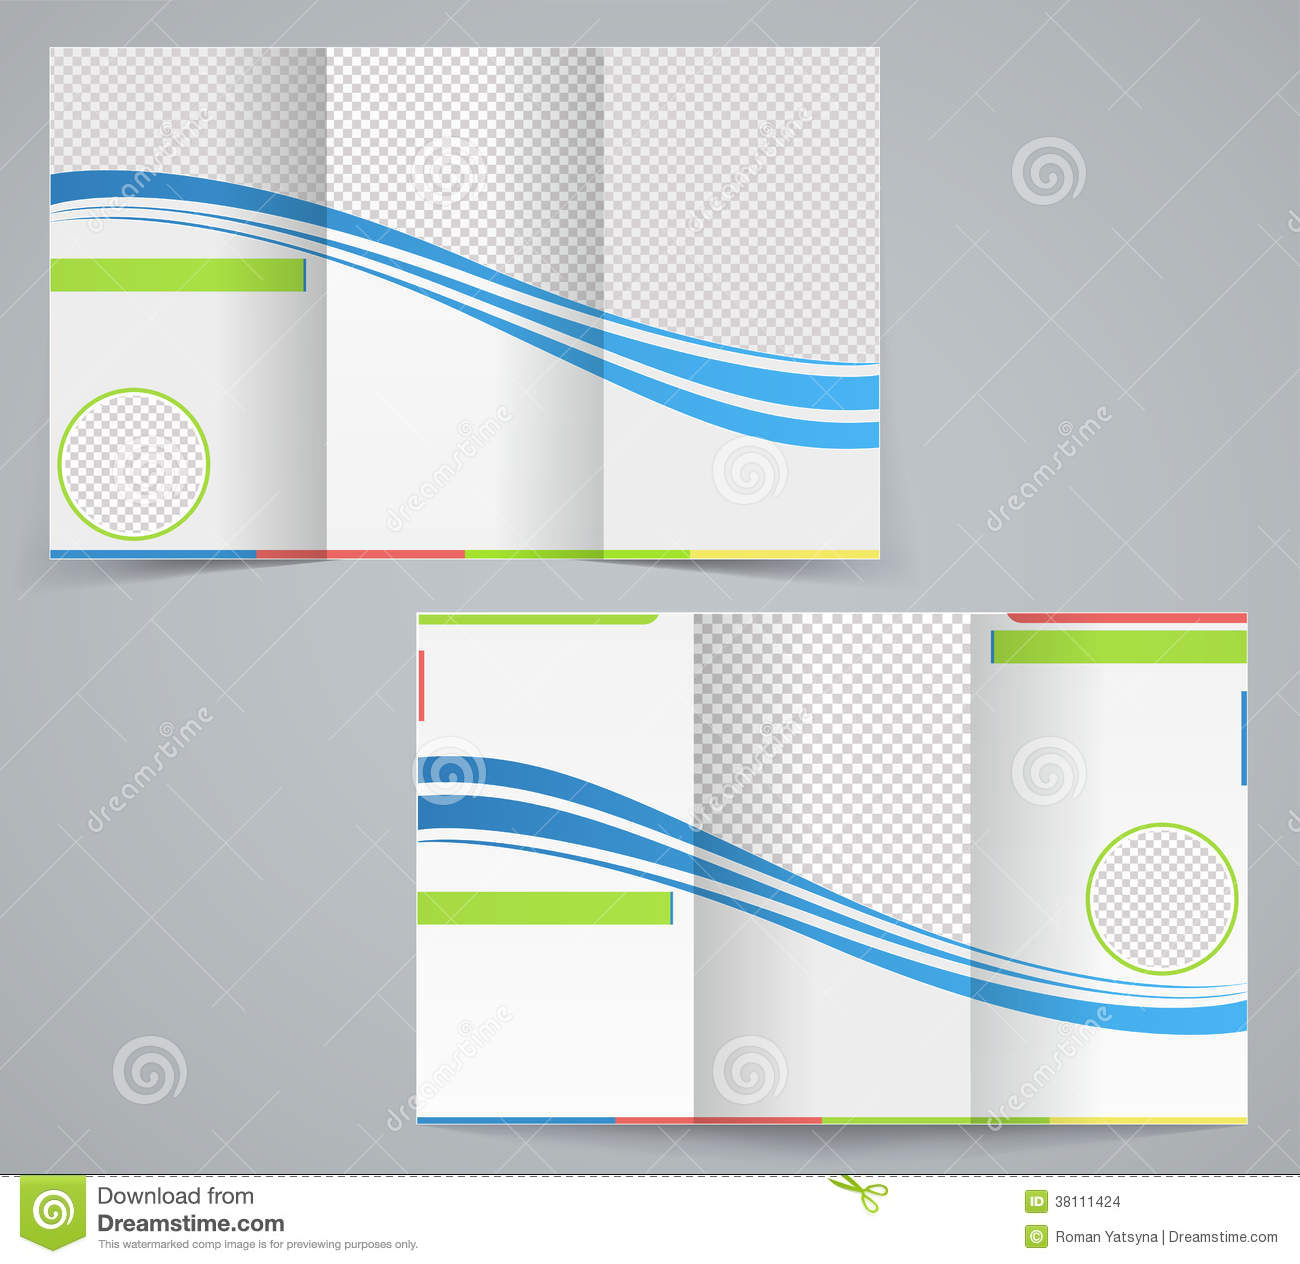 Tri fold business brochure template stock vector for Tri fold business brochure template